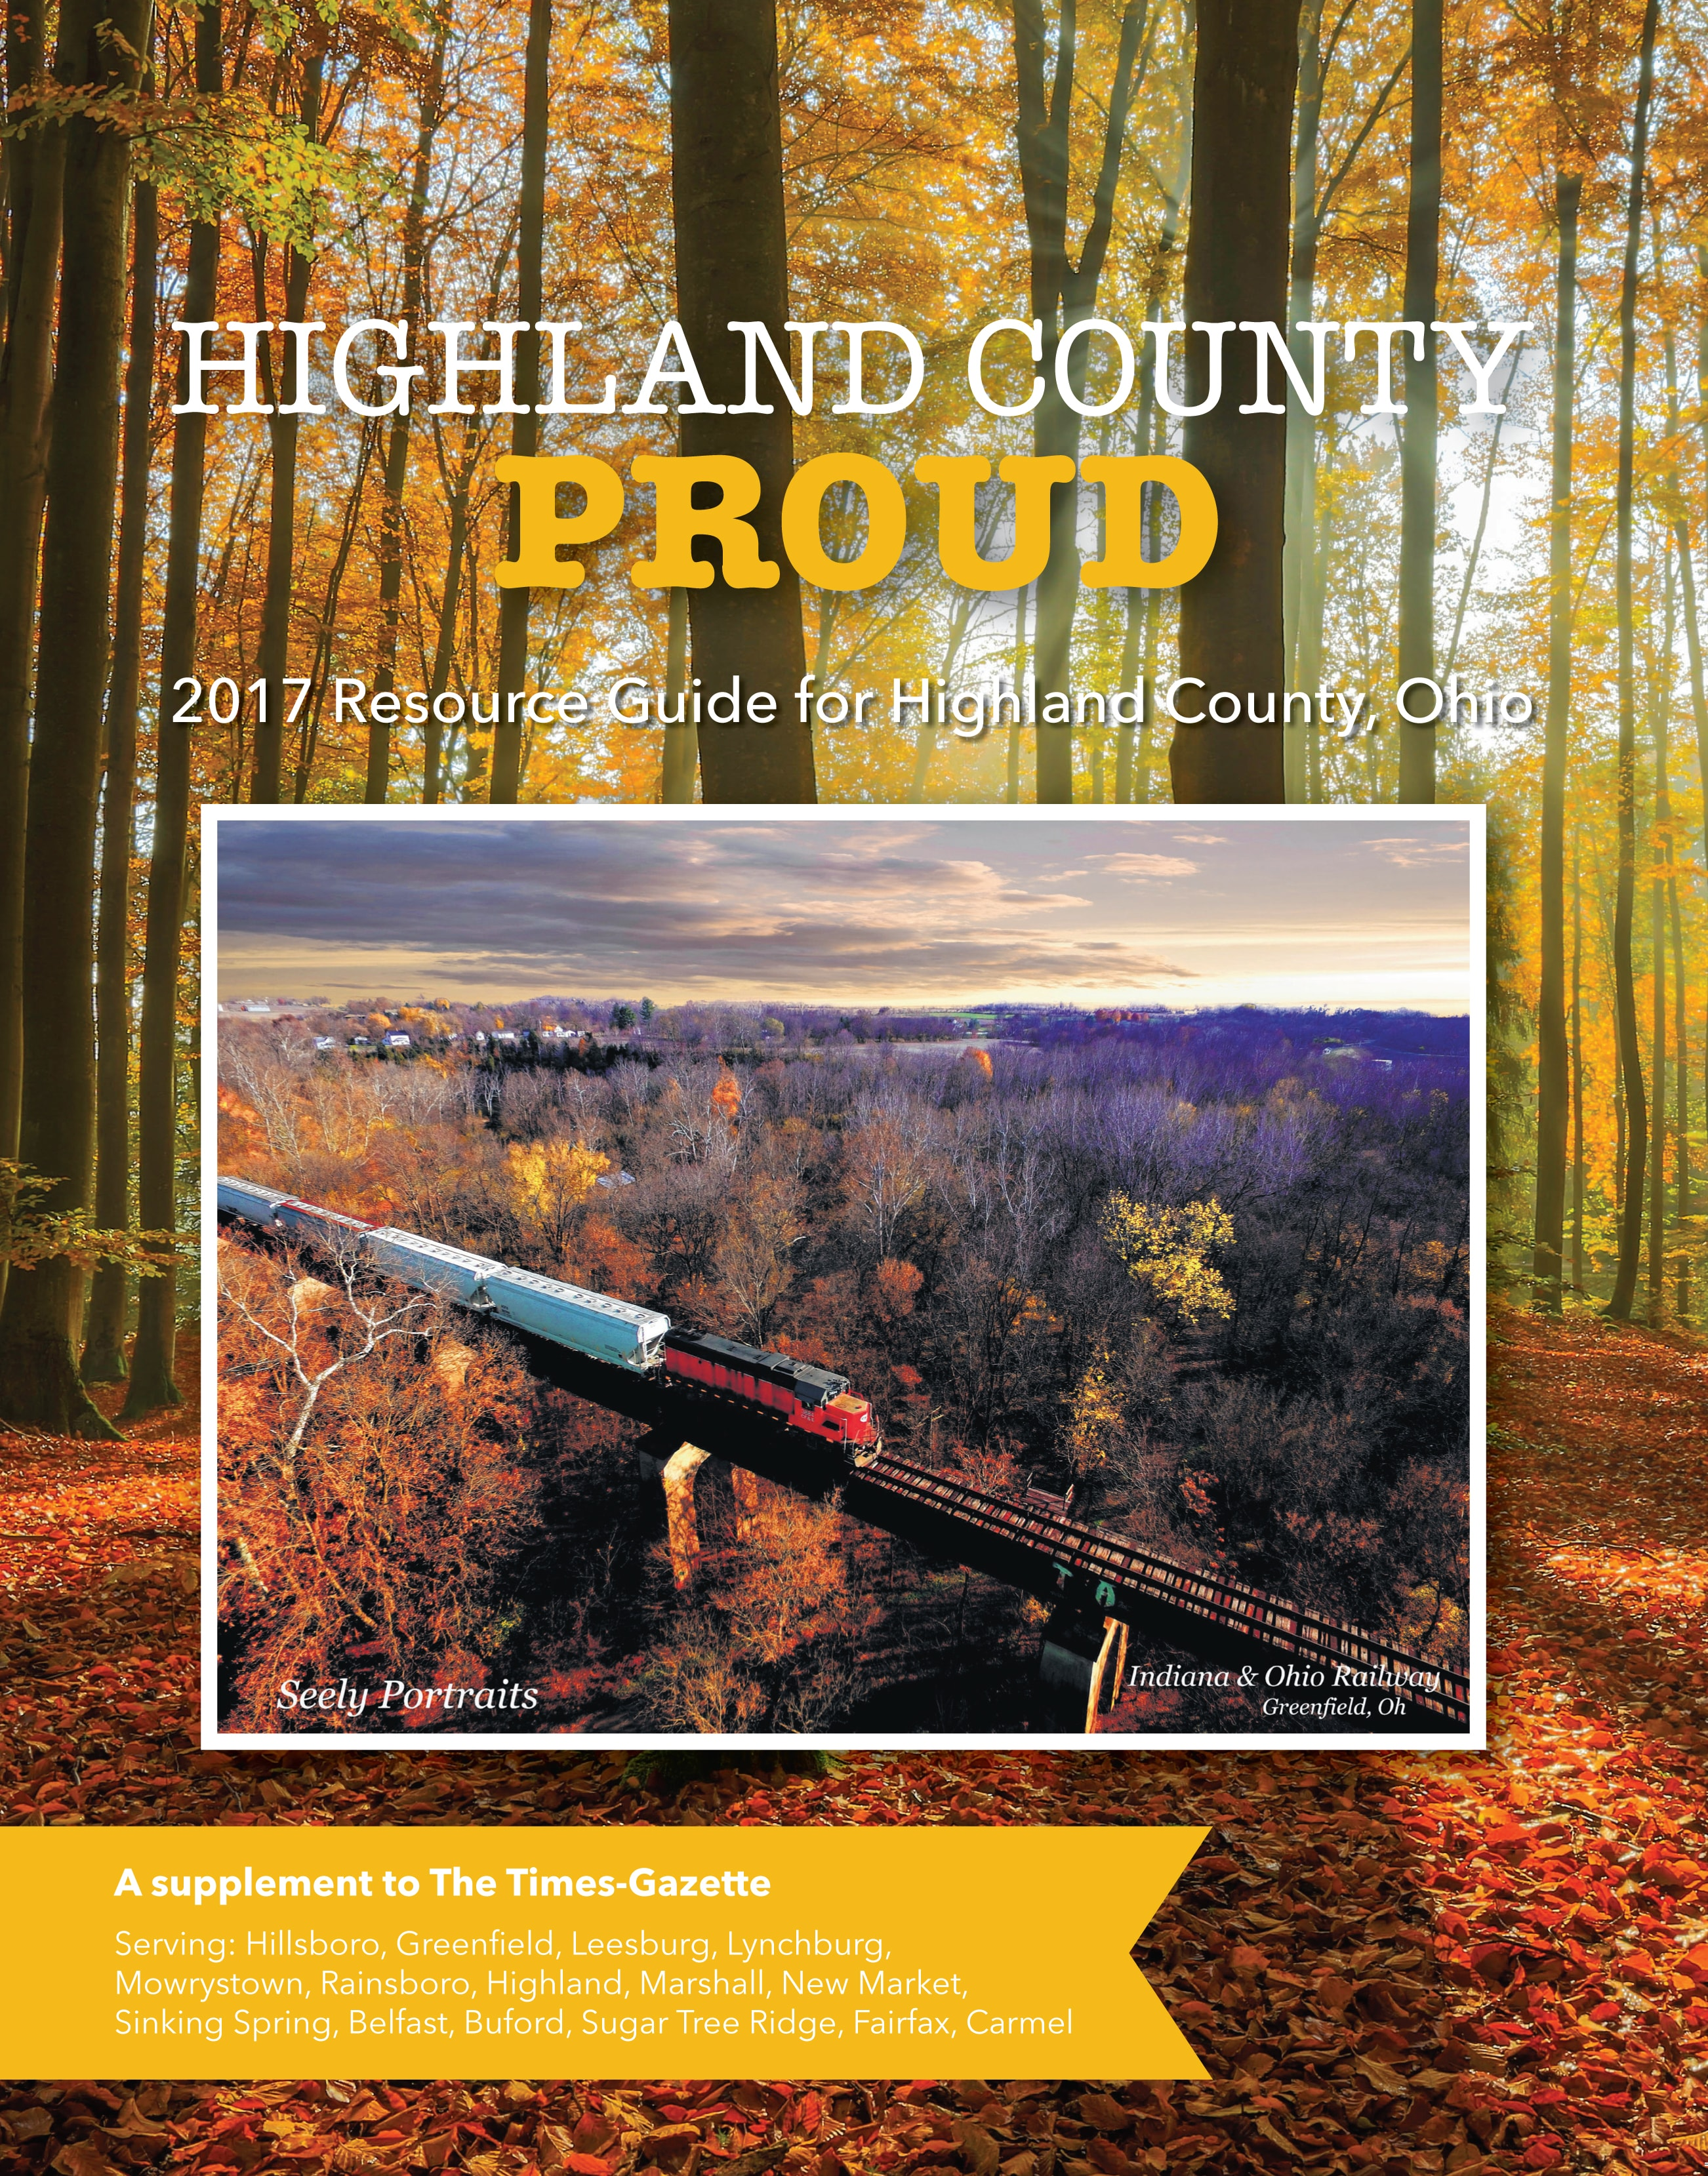 Highland County Proud 2017